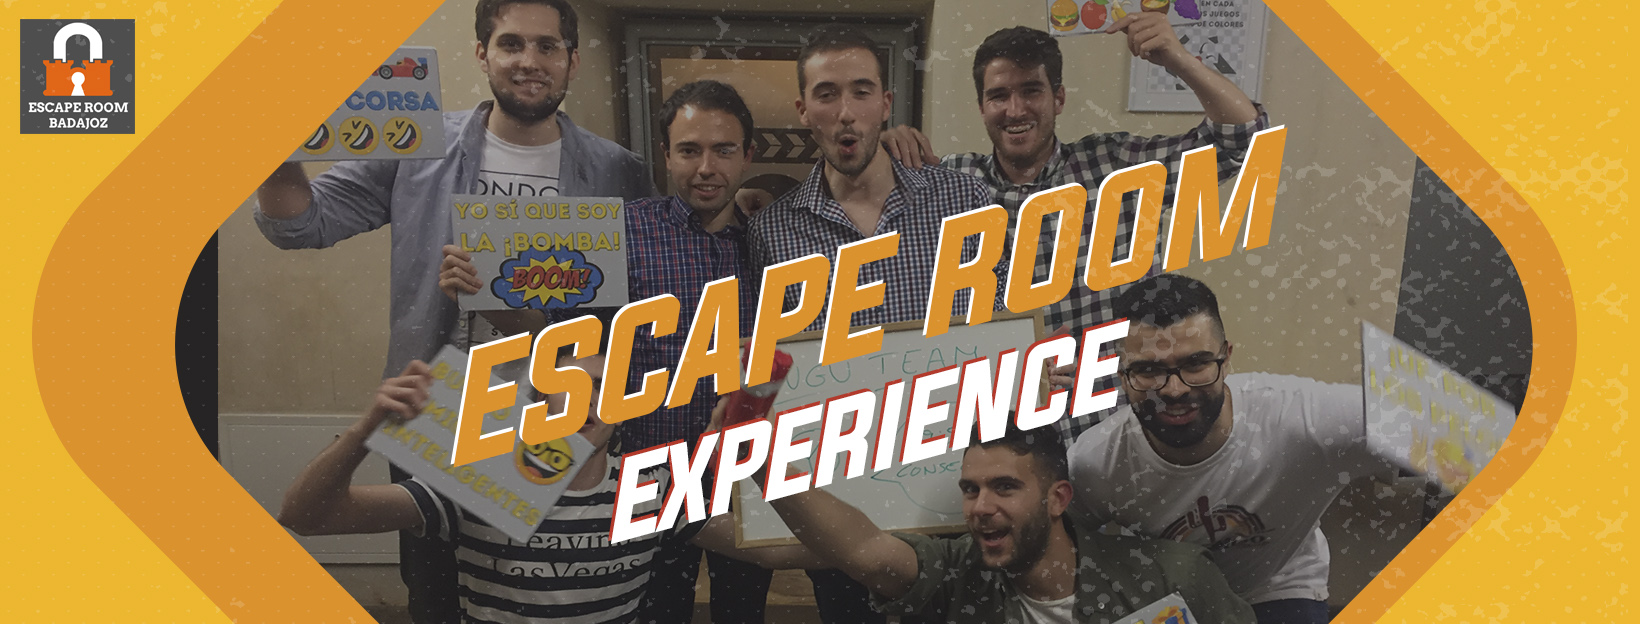 Escape-room-experience-002